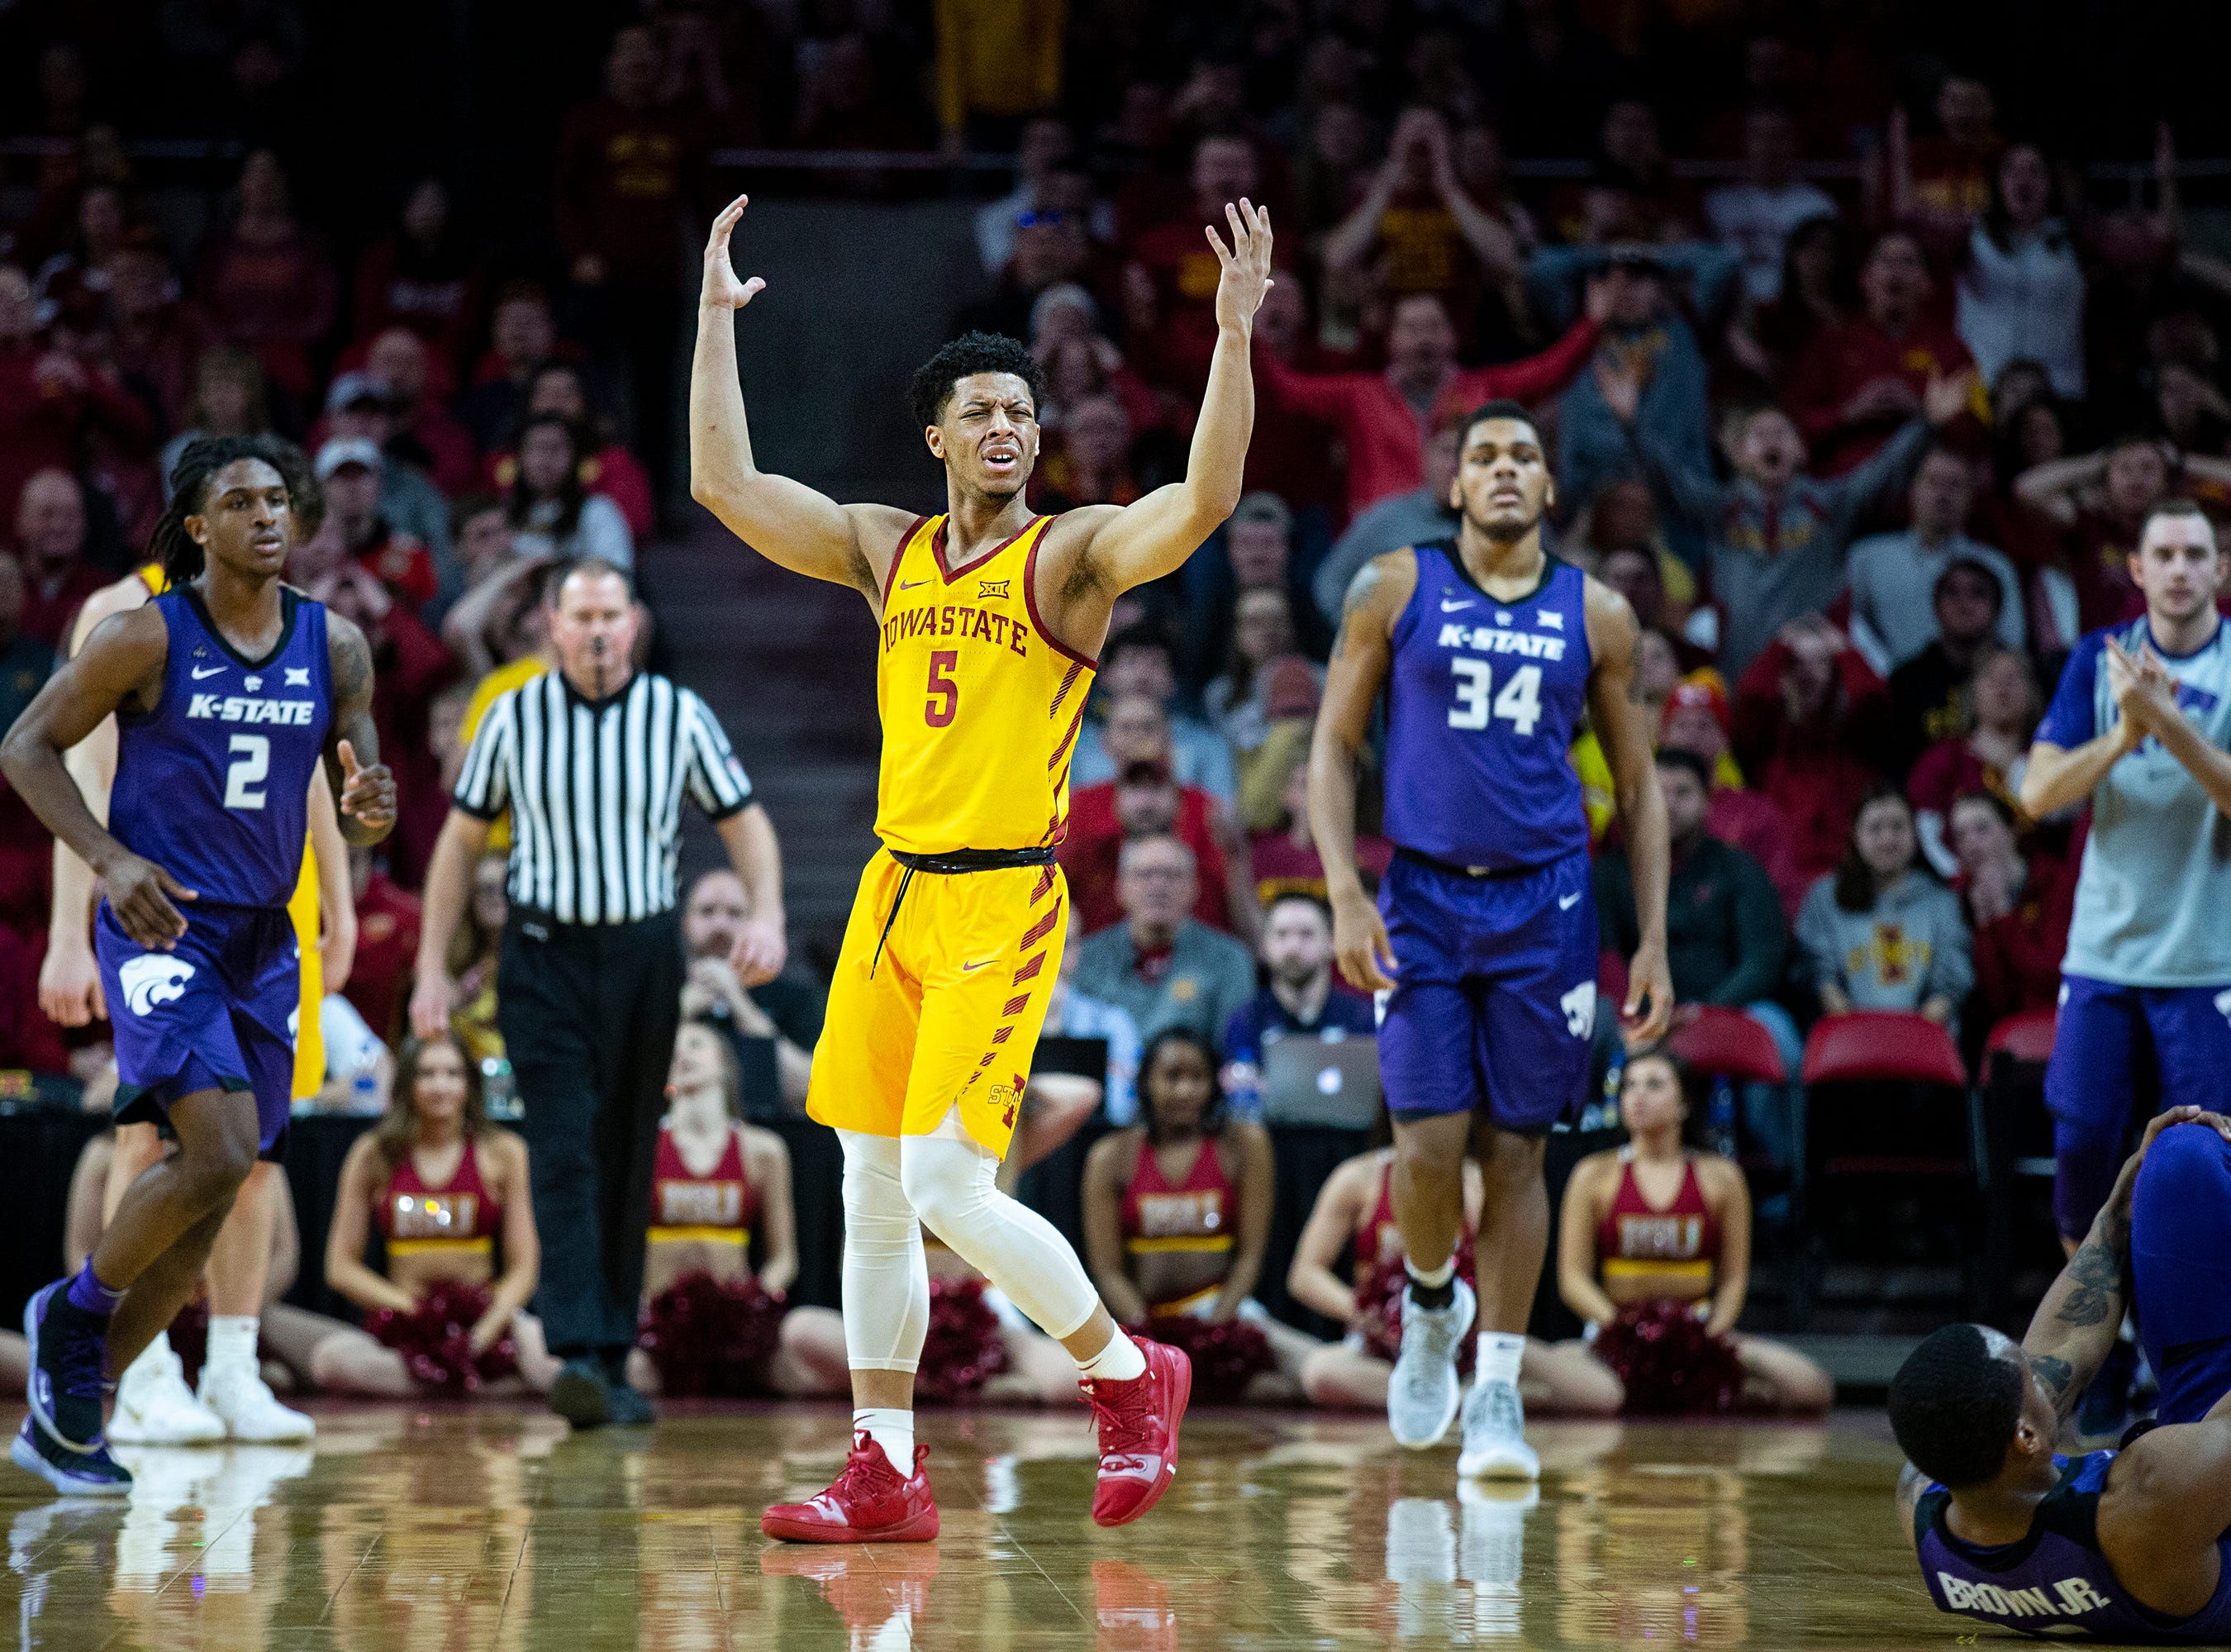 Iowa State's Lindell Wigginton reacts after being called for a foul during the Iowa State men's basketball game against Kansas State on Saturday, Jan. 12, 2019, in Hilton Coliseum. The Cyclones lost to KSU by one point, 58-57.